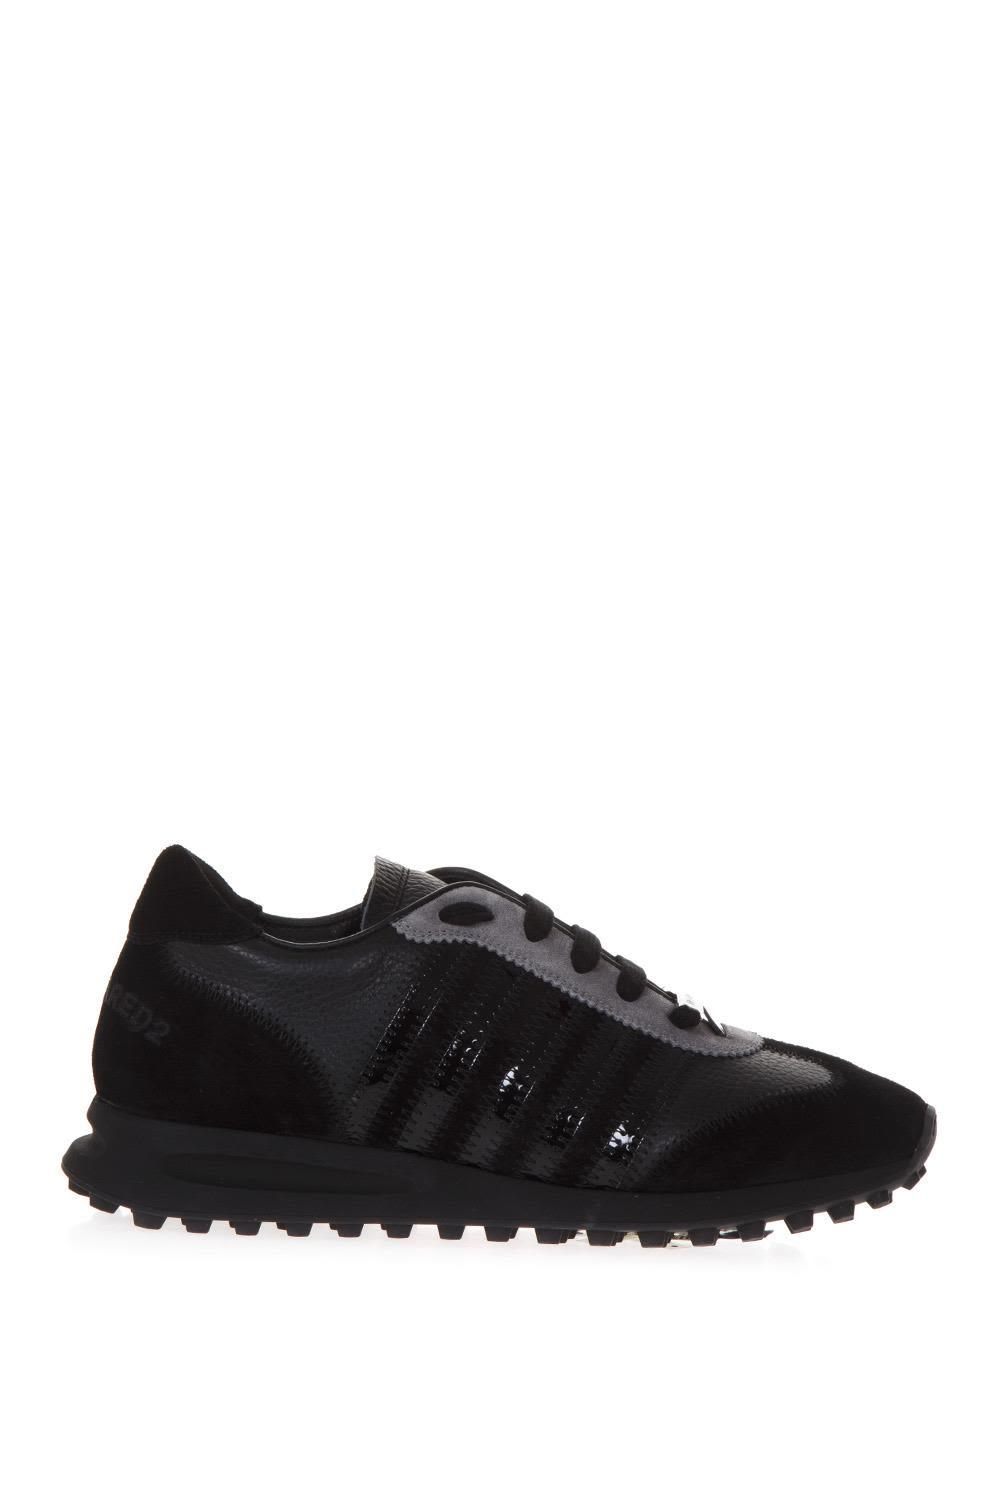 Dsquared2 New Runners Sneakers In Black